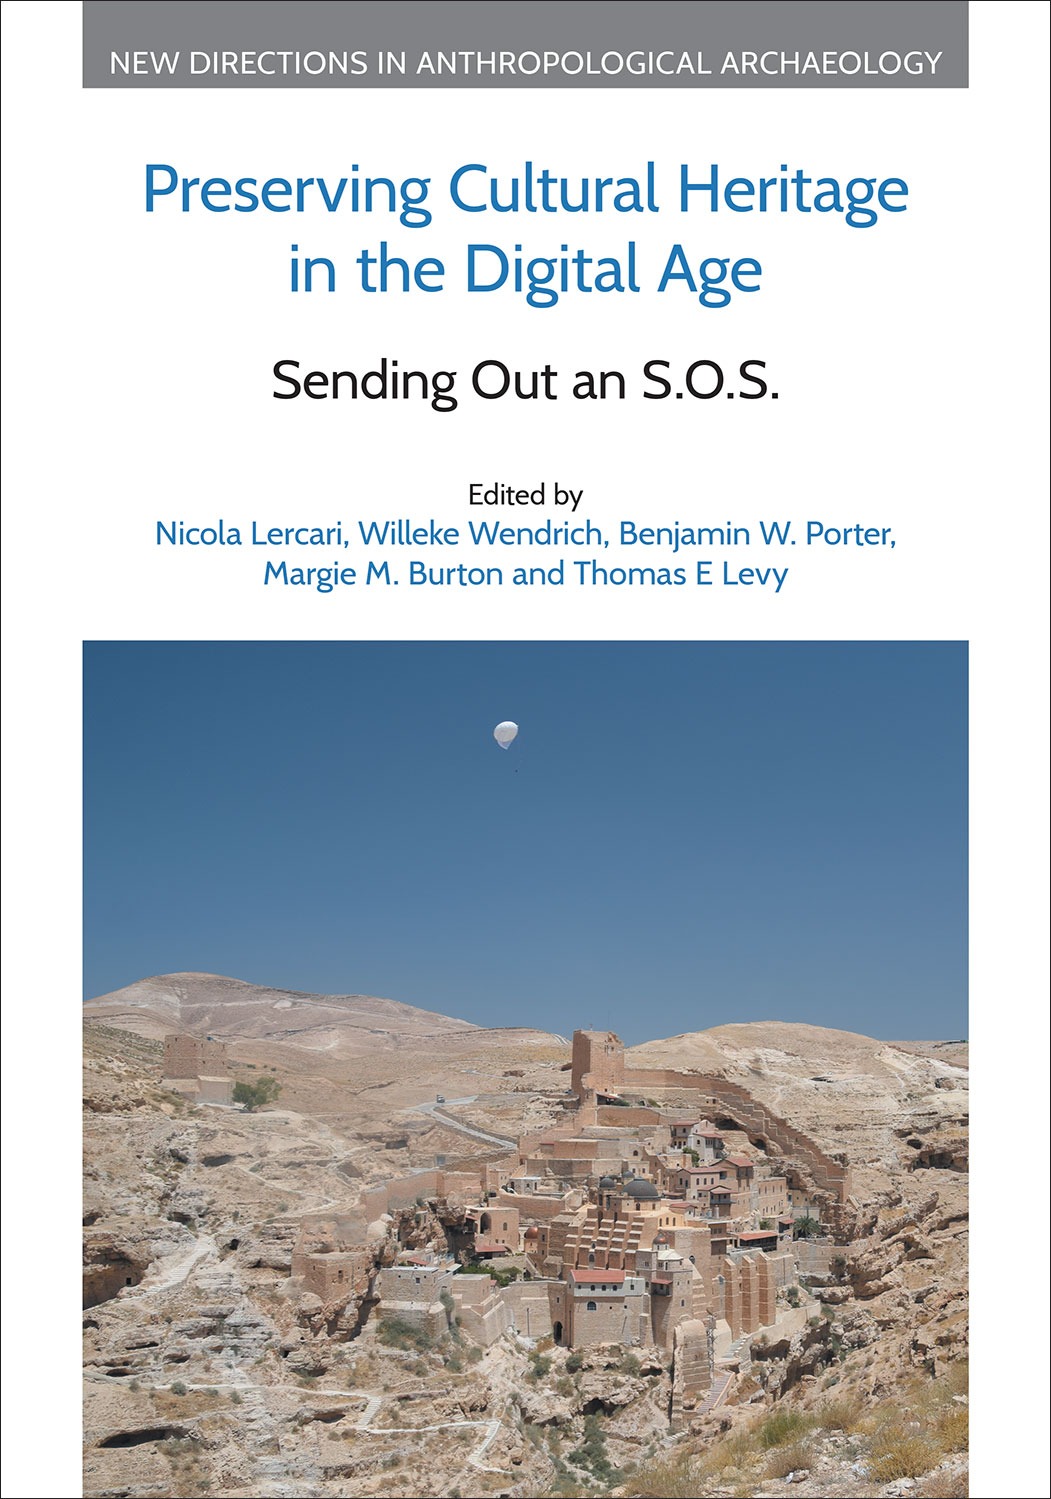 Preserving Cultural Heritage in the Digital Age